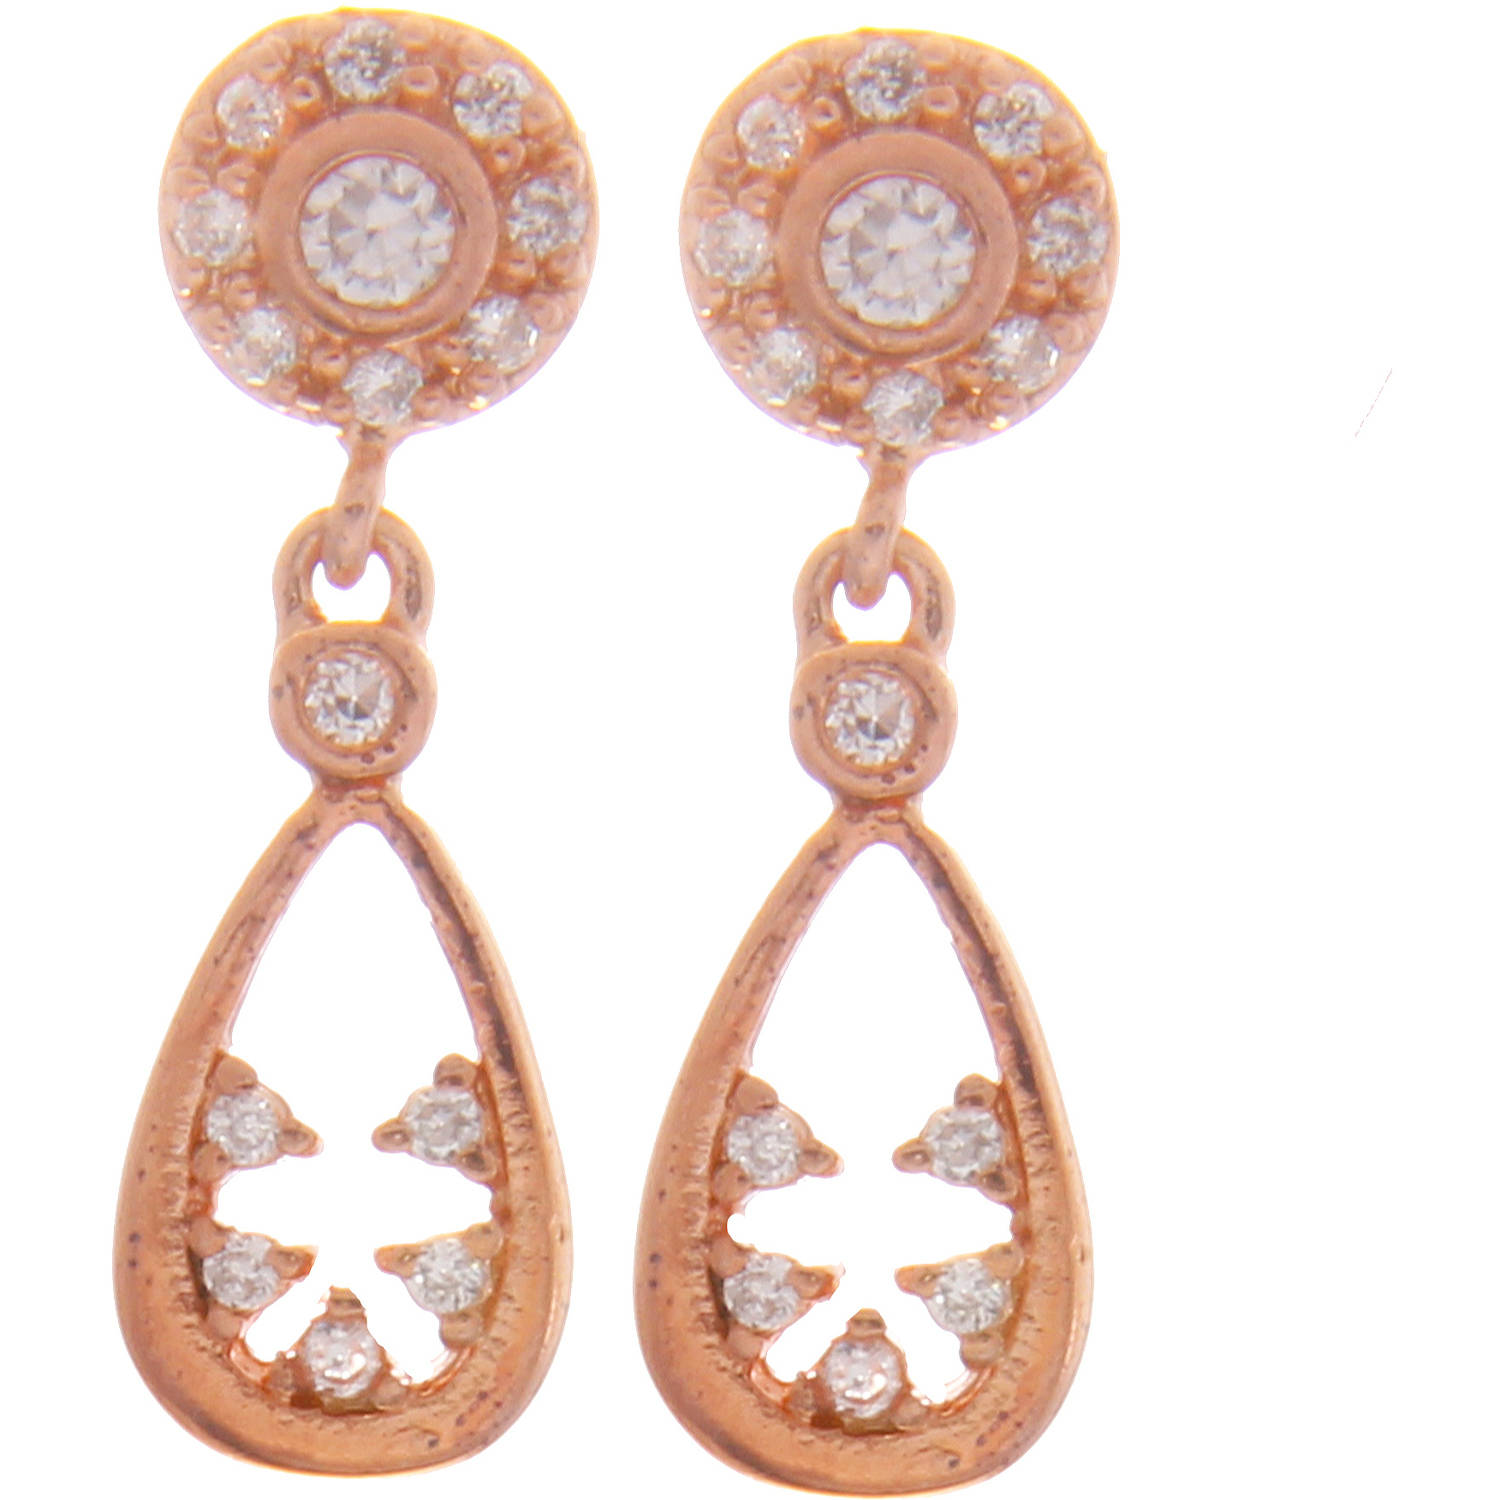 Angelique Silver CZ 18kt Rose Gold over Sterling Silver Teardrop Earrings